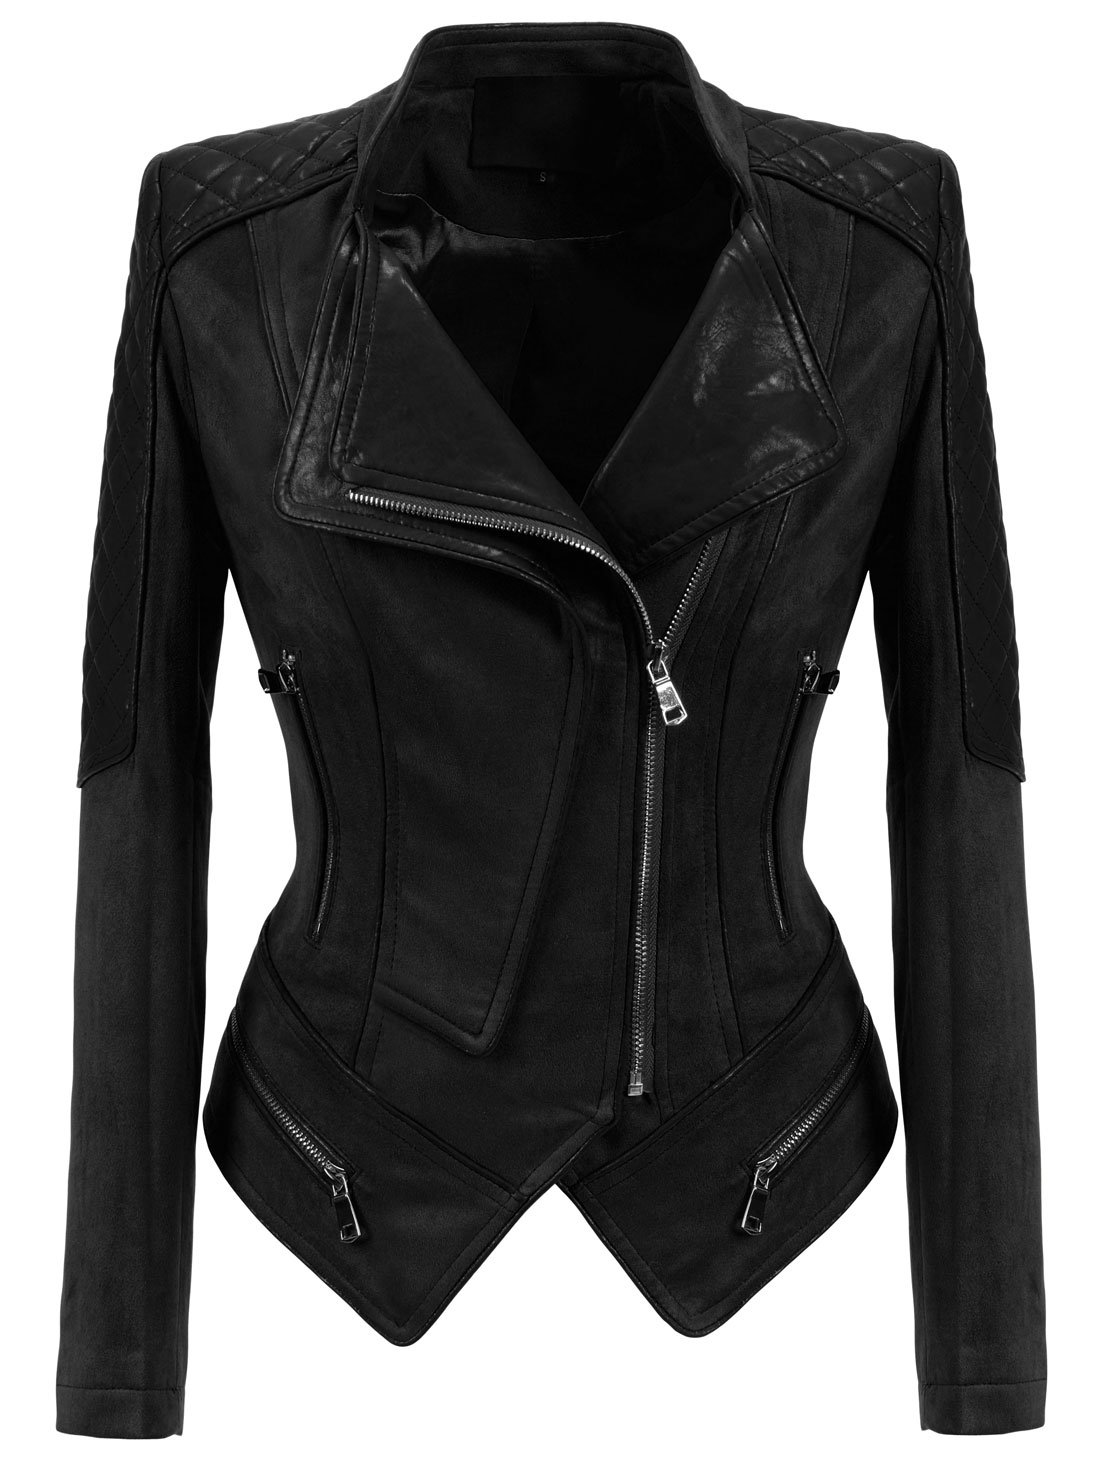 Chouyatou Women's Fashion Perfect Fit Faux Suede-Pu Leather Quilted Biker Jacket (X-Small, Black)